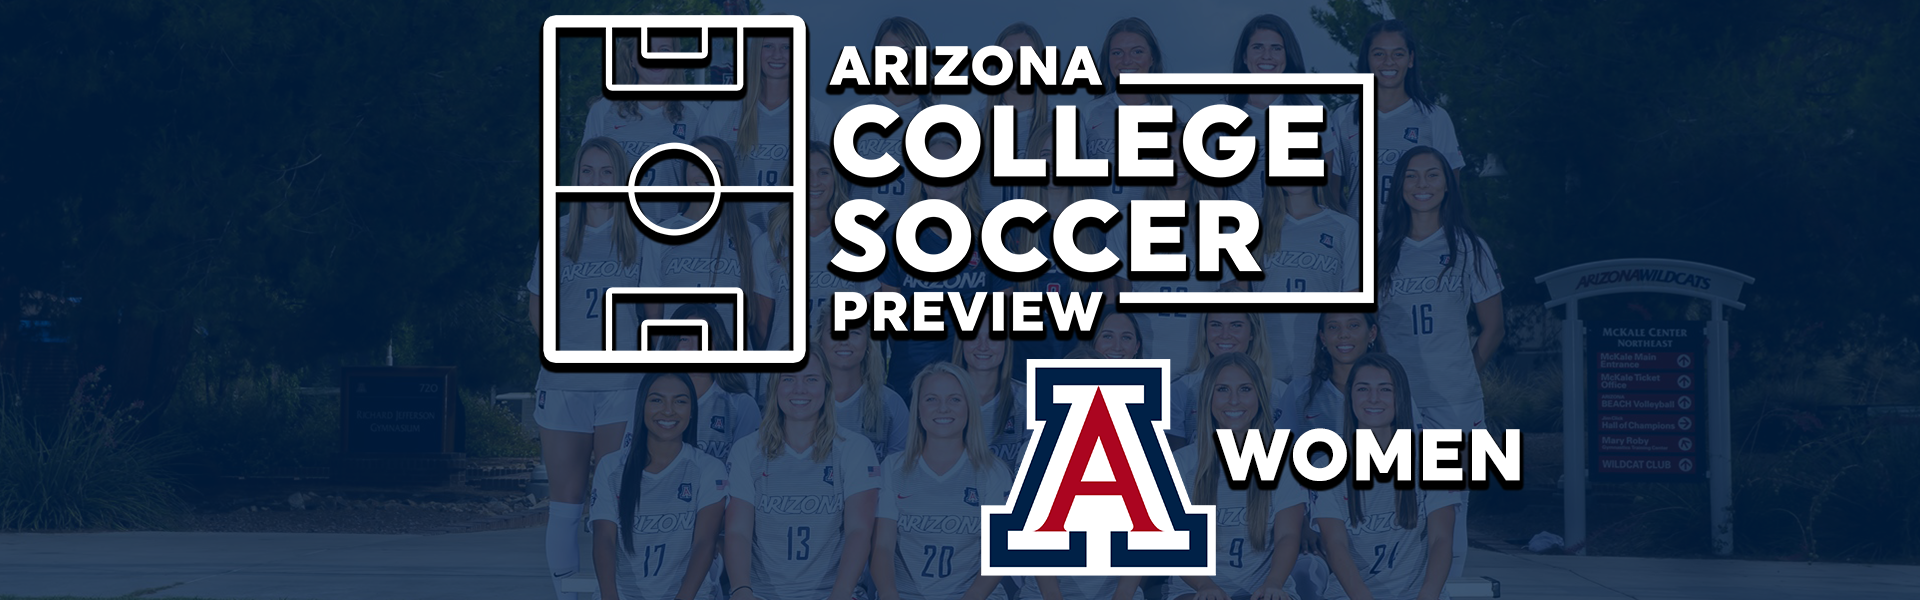 Arizona-Women-Soccer